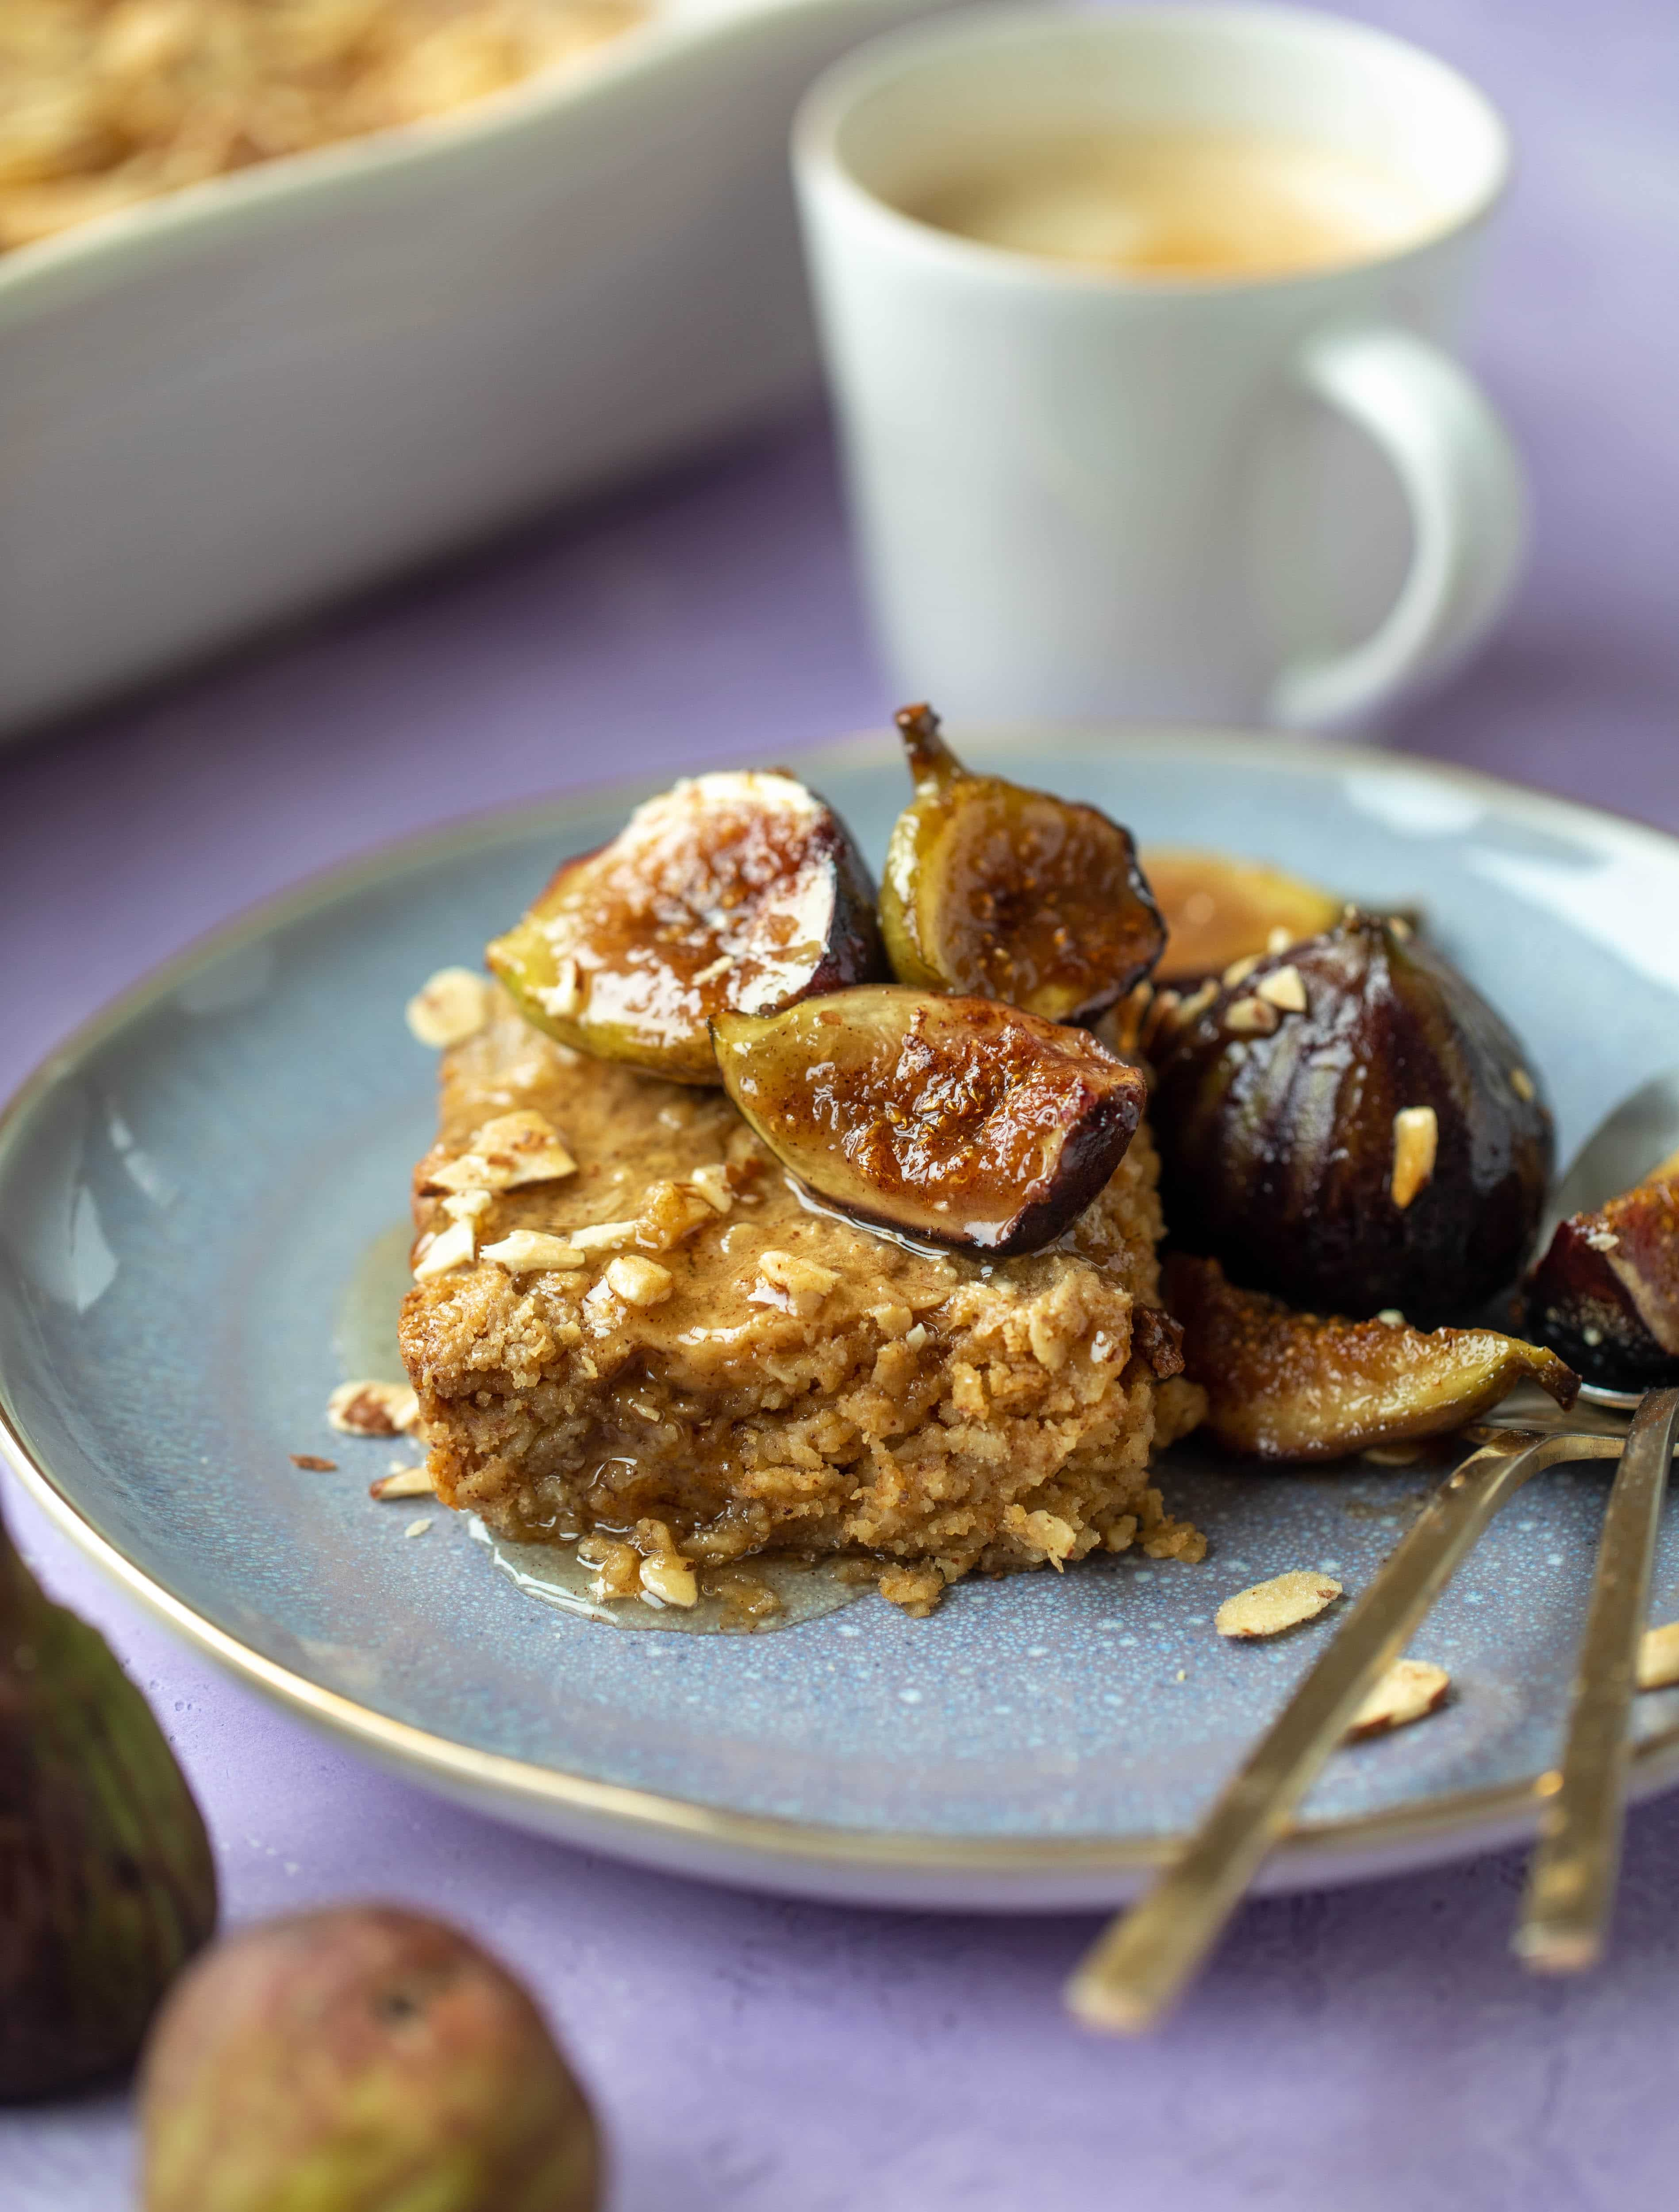 This almond butter baked oatmeal with sticky cinnamon figs is the perfect weekend treat or great for when you have brunch guests!